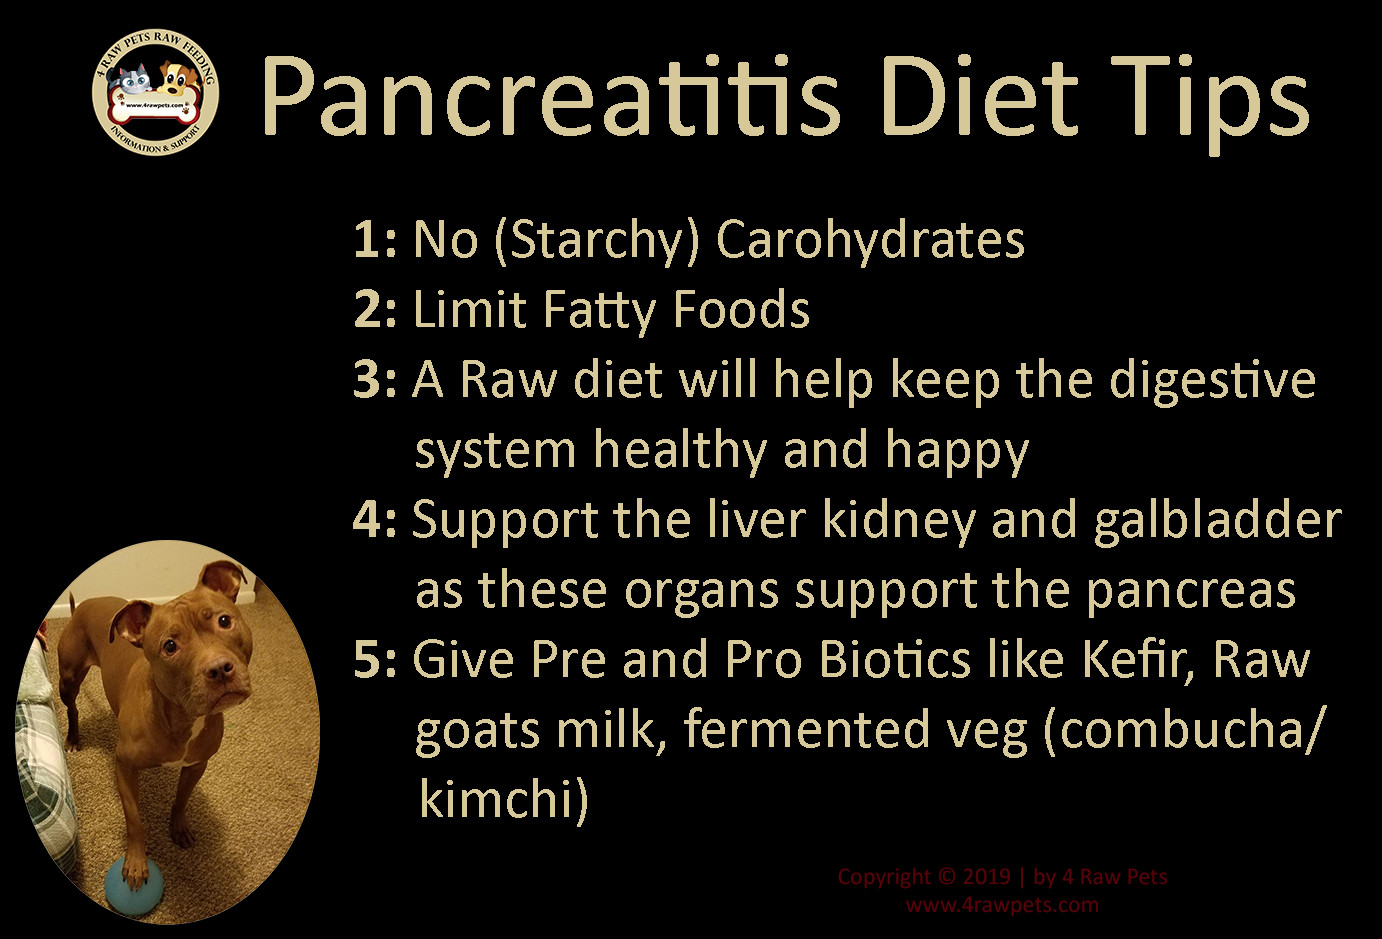 Pancreatitis diet tips